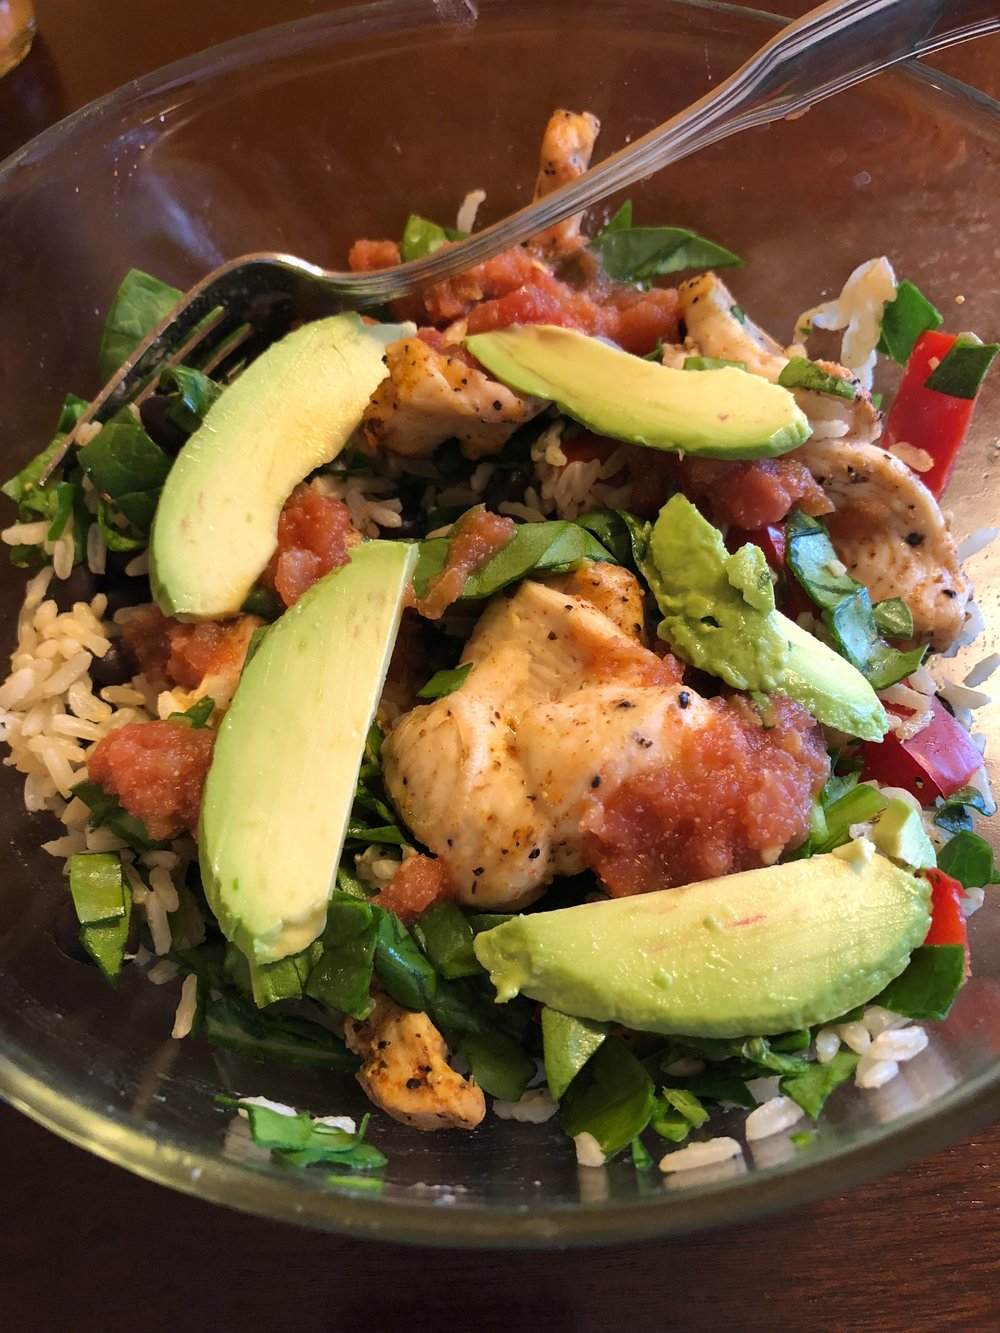 Chicken fajita bowl with brown rice, chopped spinach, avocado and black beans.